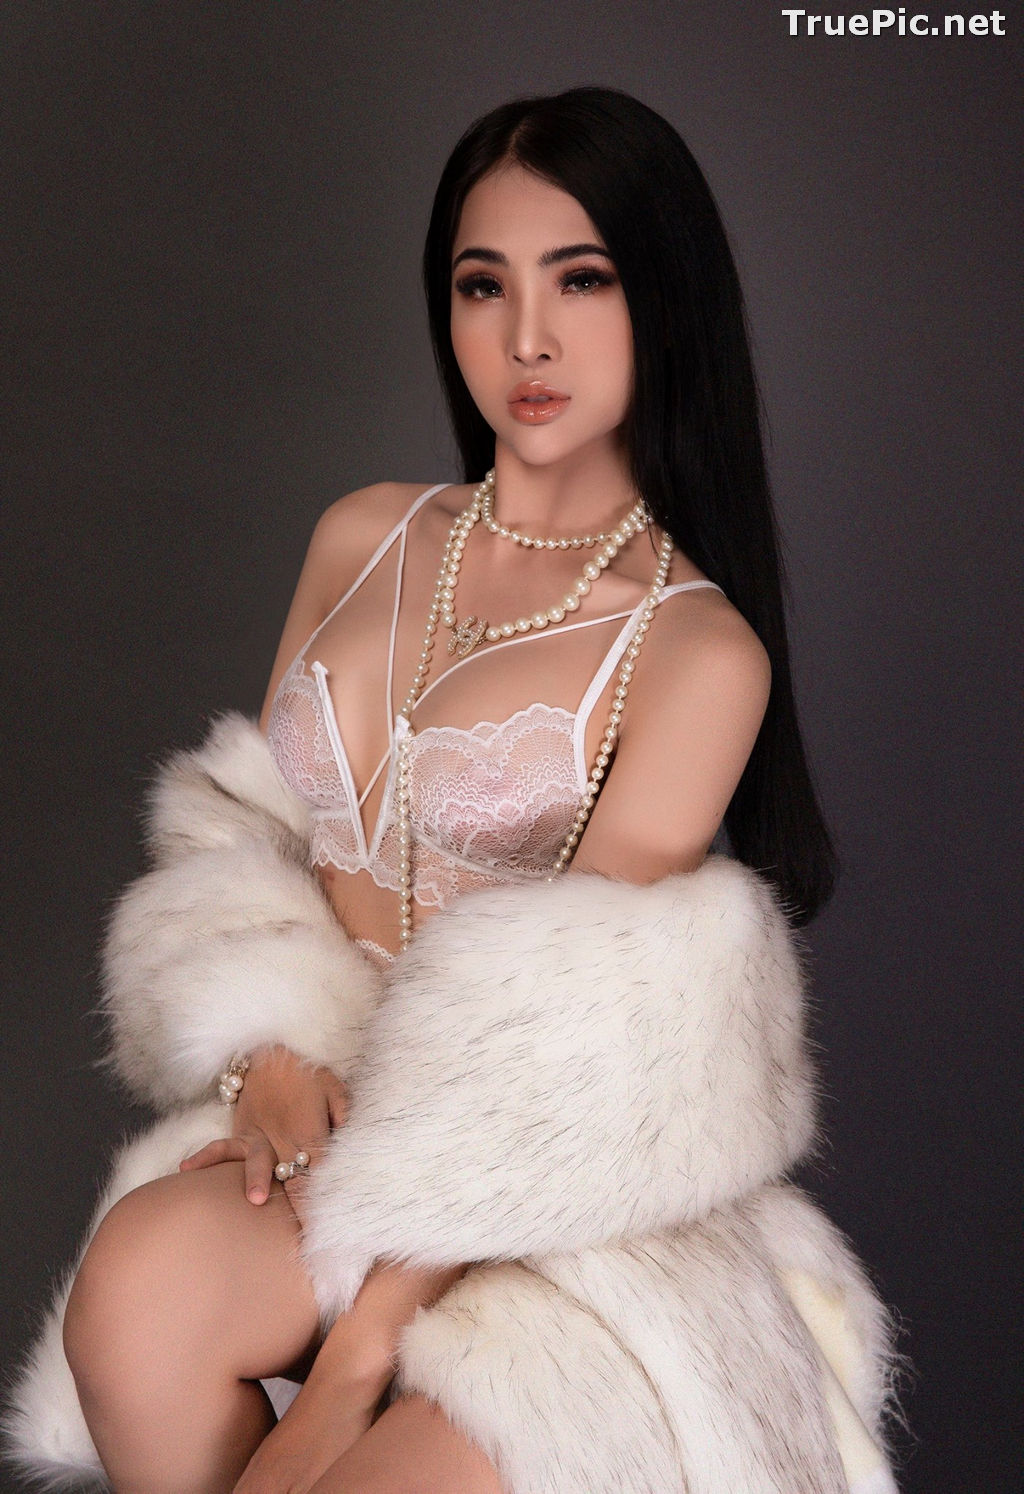 Image Vietnamese Model - Hot Beautiful Girls In White Collection - TruePic.net - Picture-4